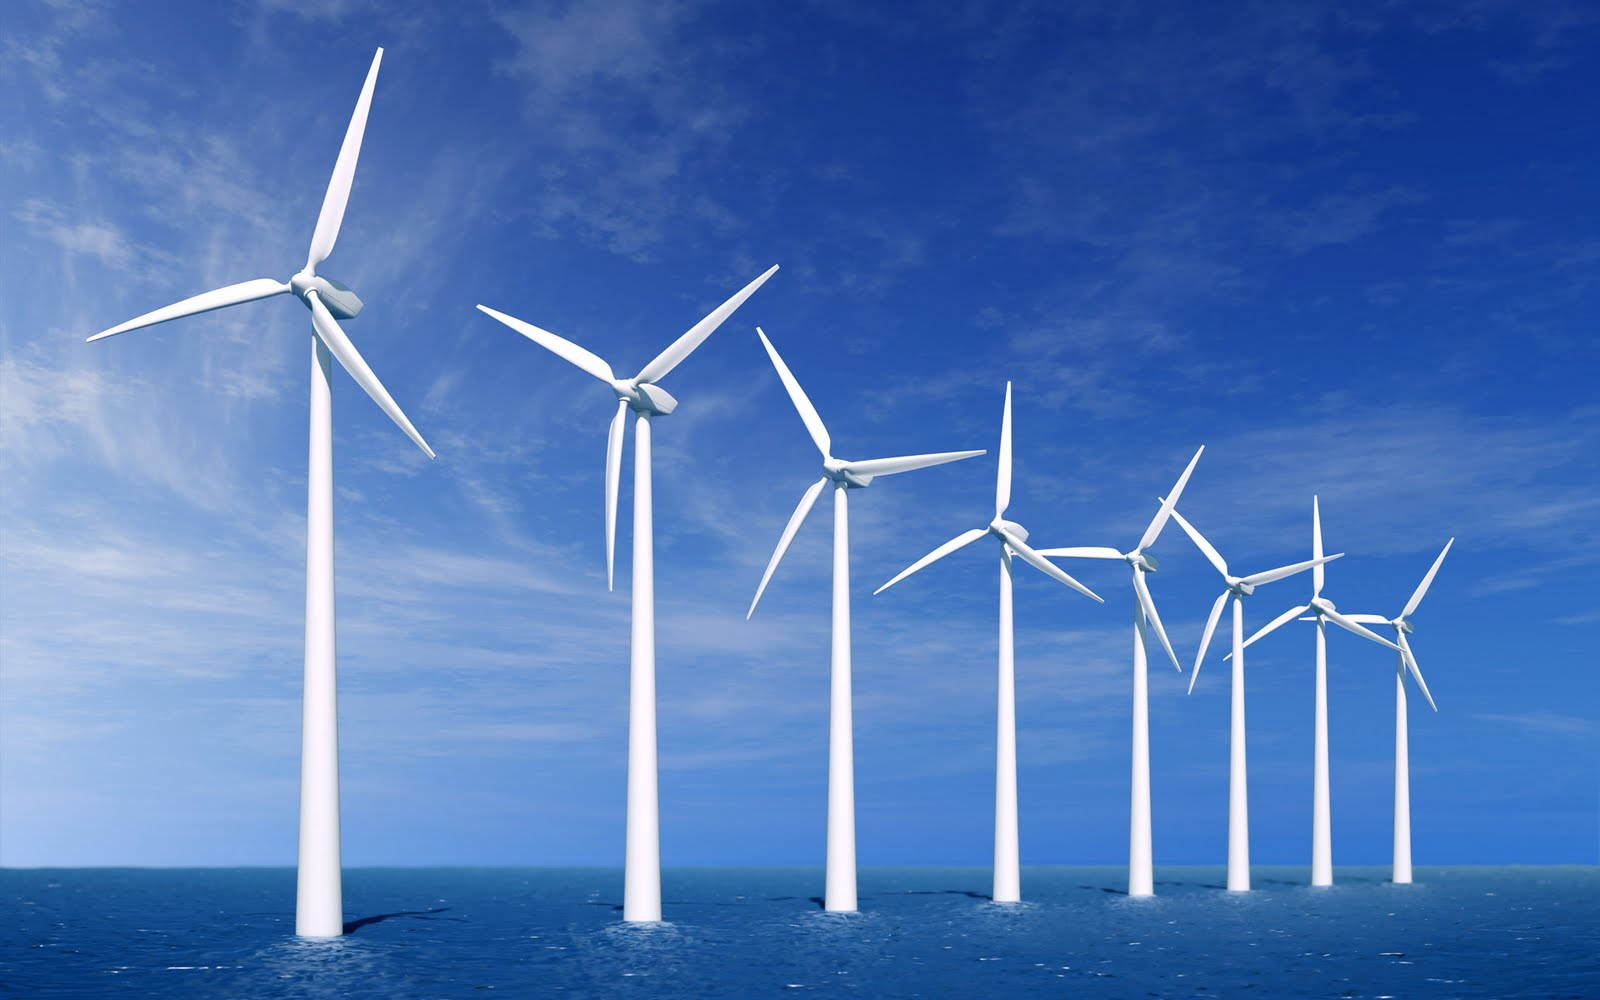 wind energy Wind energywind turbines capture or harvest kinetic energy from wind, converting it into electricity utility-scale wind turbines are mounted on tall towers, some 300 feet or taller.